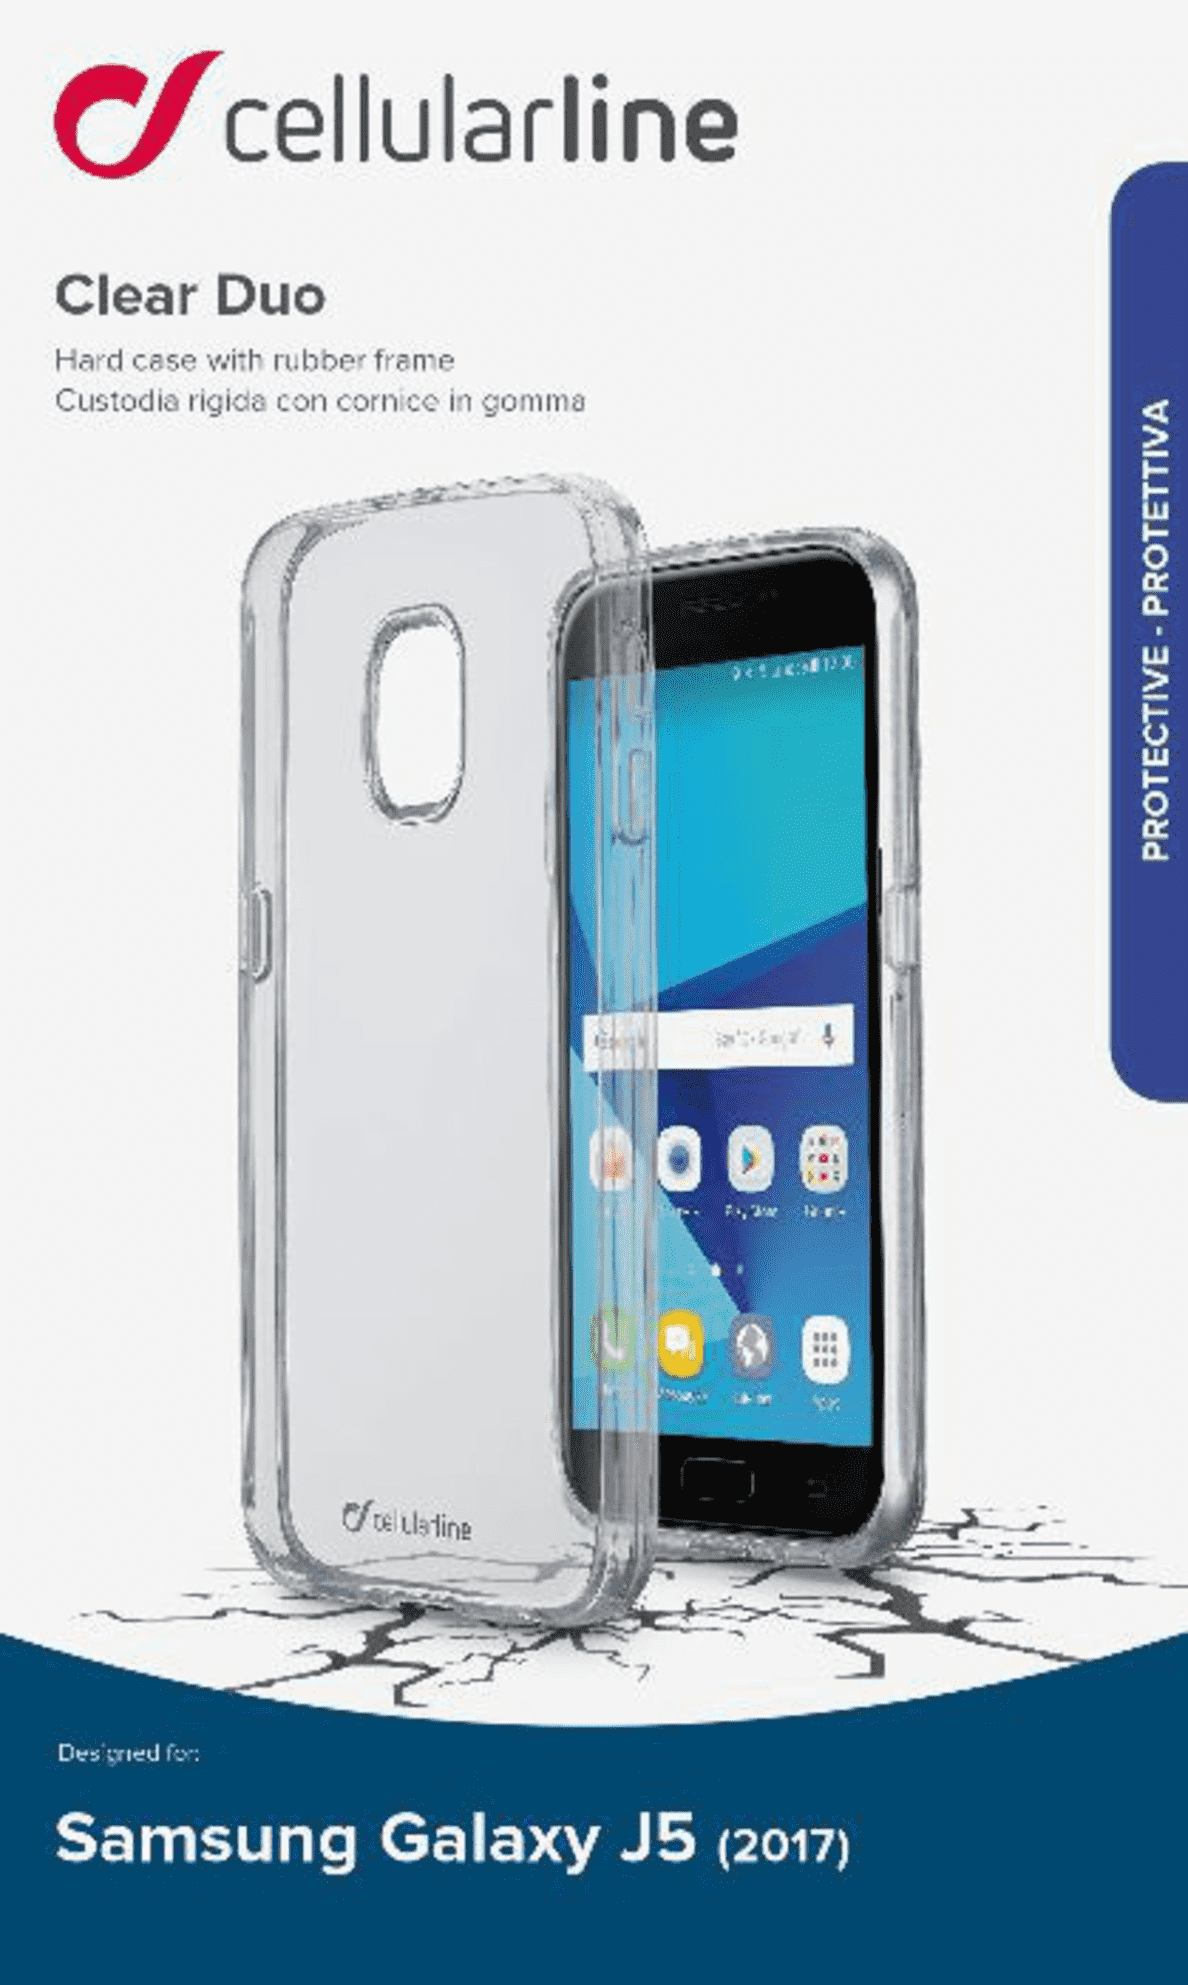 CELLULAR LINE CLEAR DUO für Samsung Galaxy J5 (2017) in Transparent